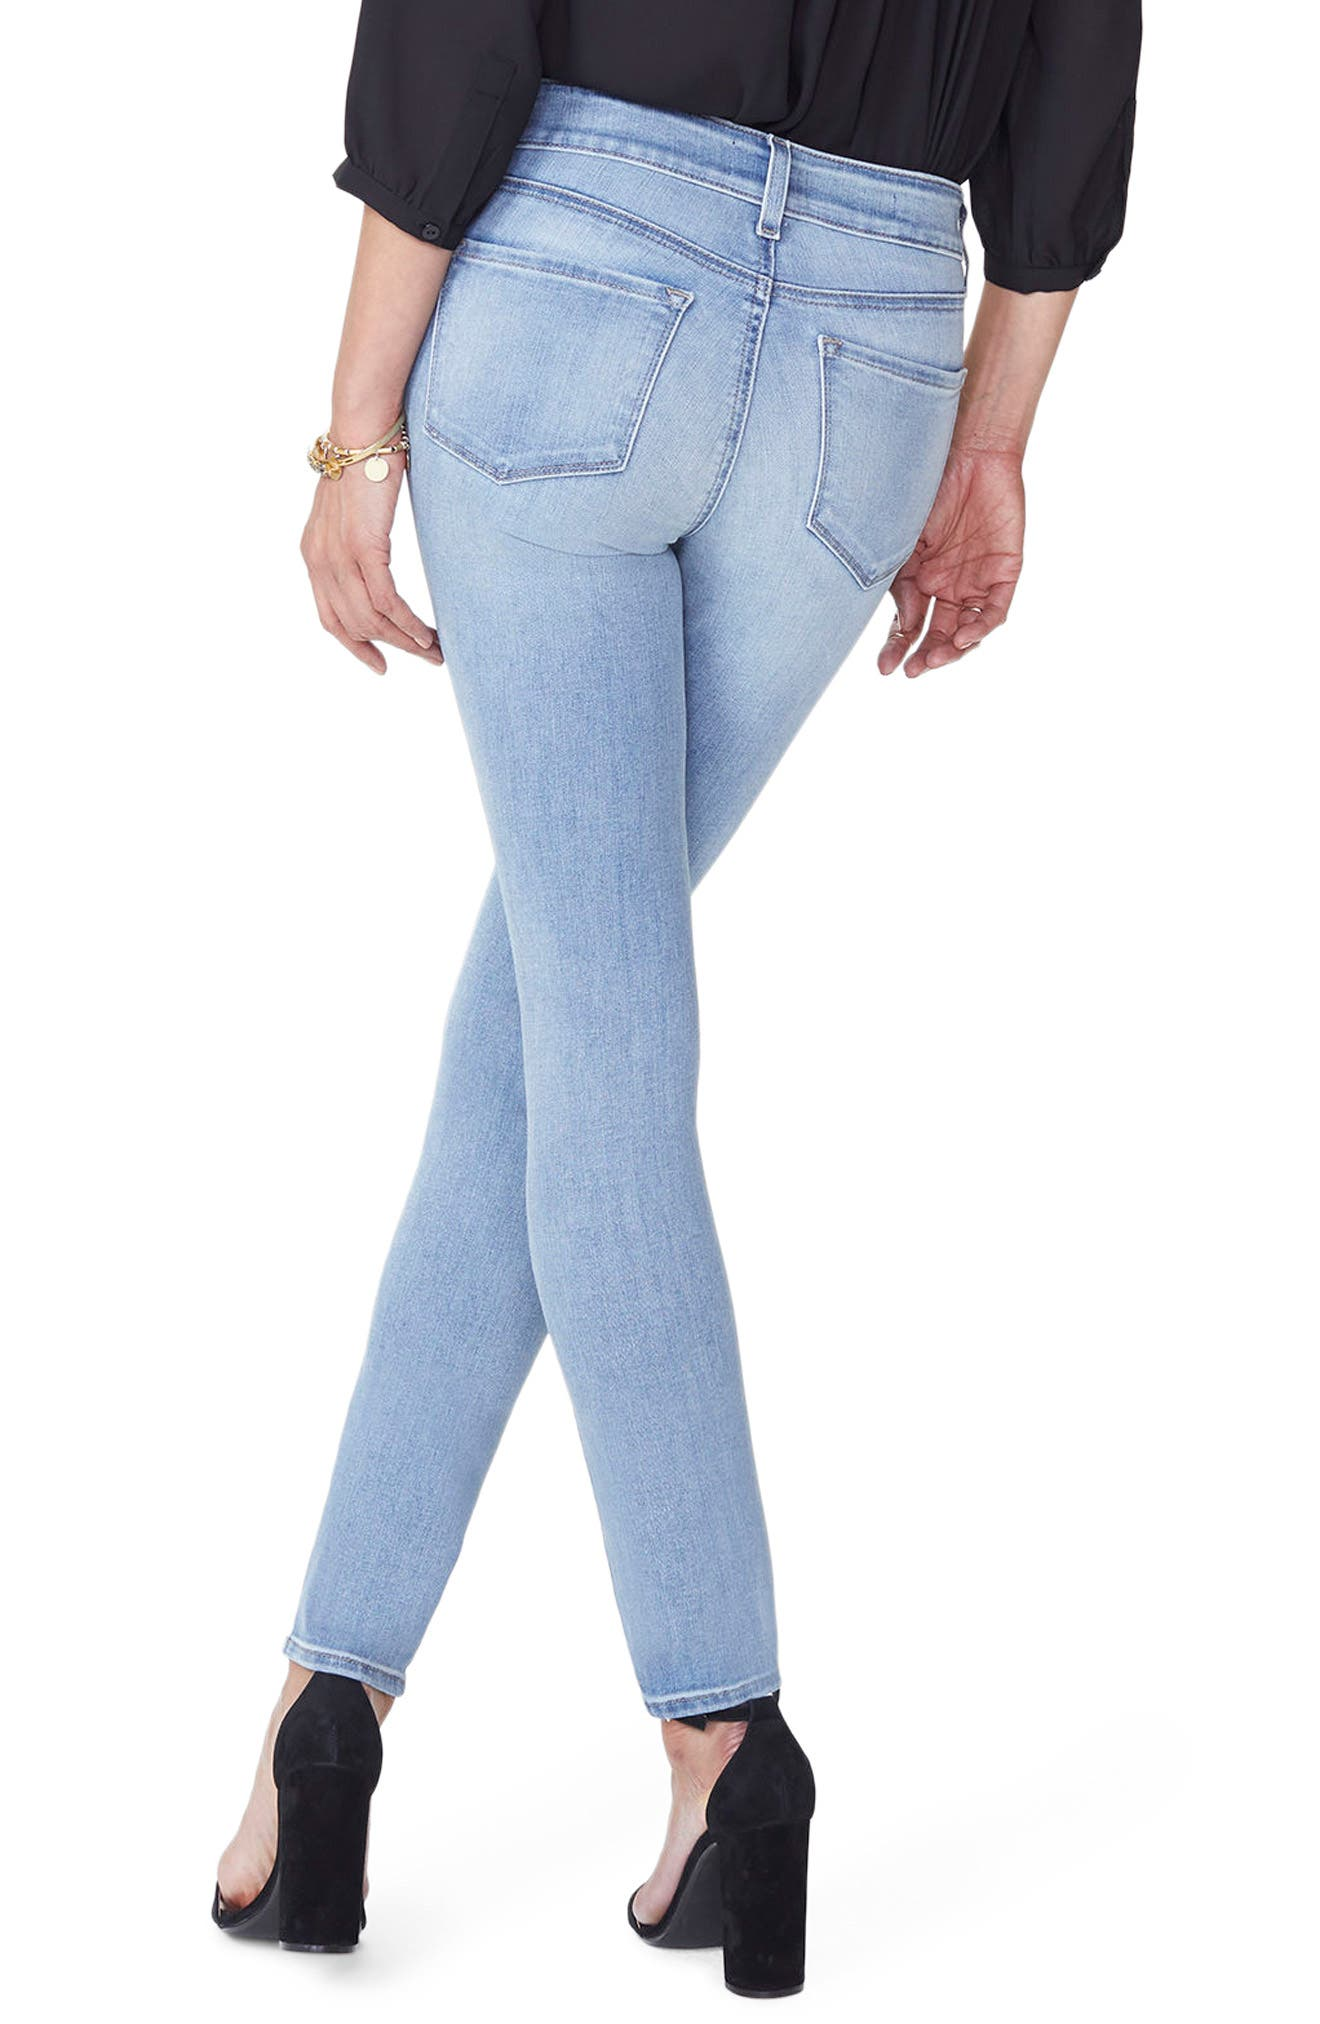 Ami Stretch Skinny Jeans,                             Alternate thumbnail 2, color,                             Dreamstate